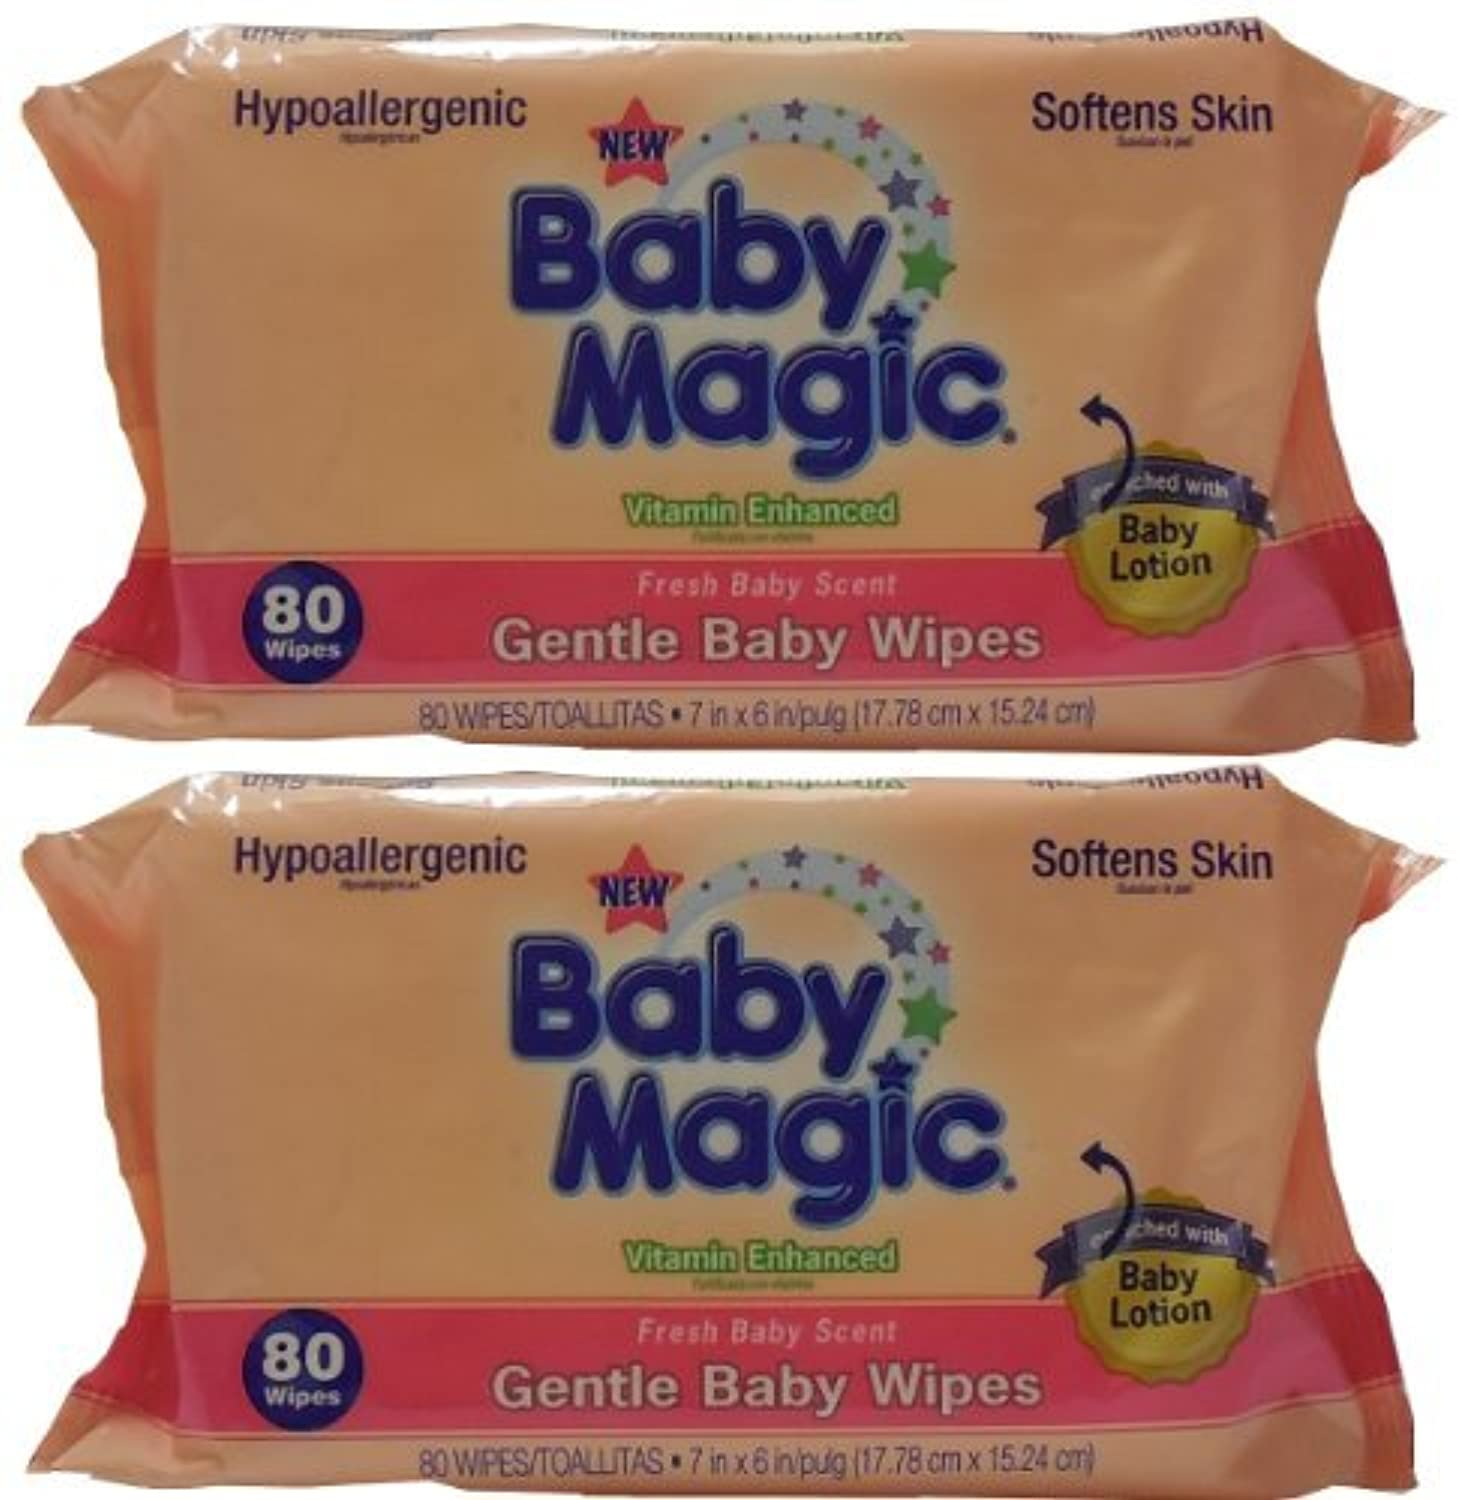 Baby Magic Gentle Baby Wipes, Refill or Travel Pack with 80 wipes (Pack of 2 - Total 160 Wipes) by Baby Magic [並行輸入品]